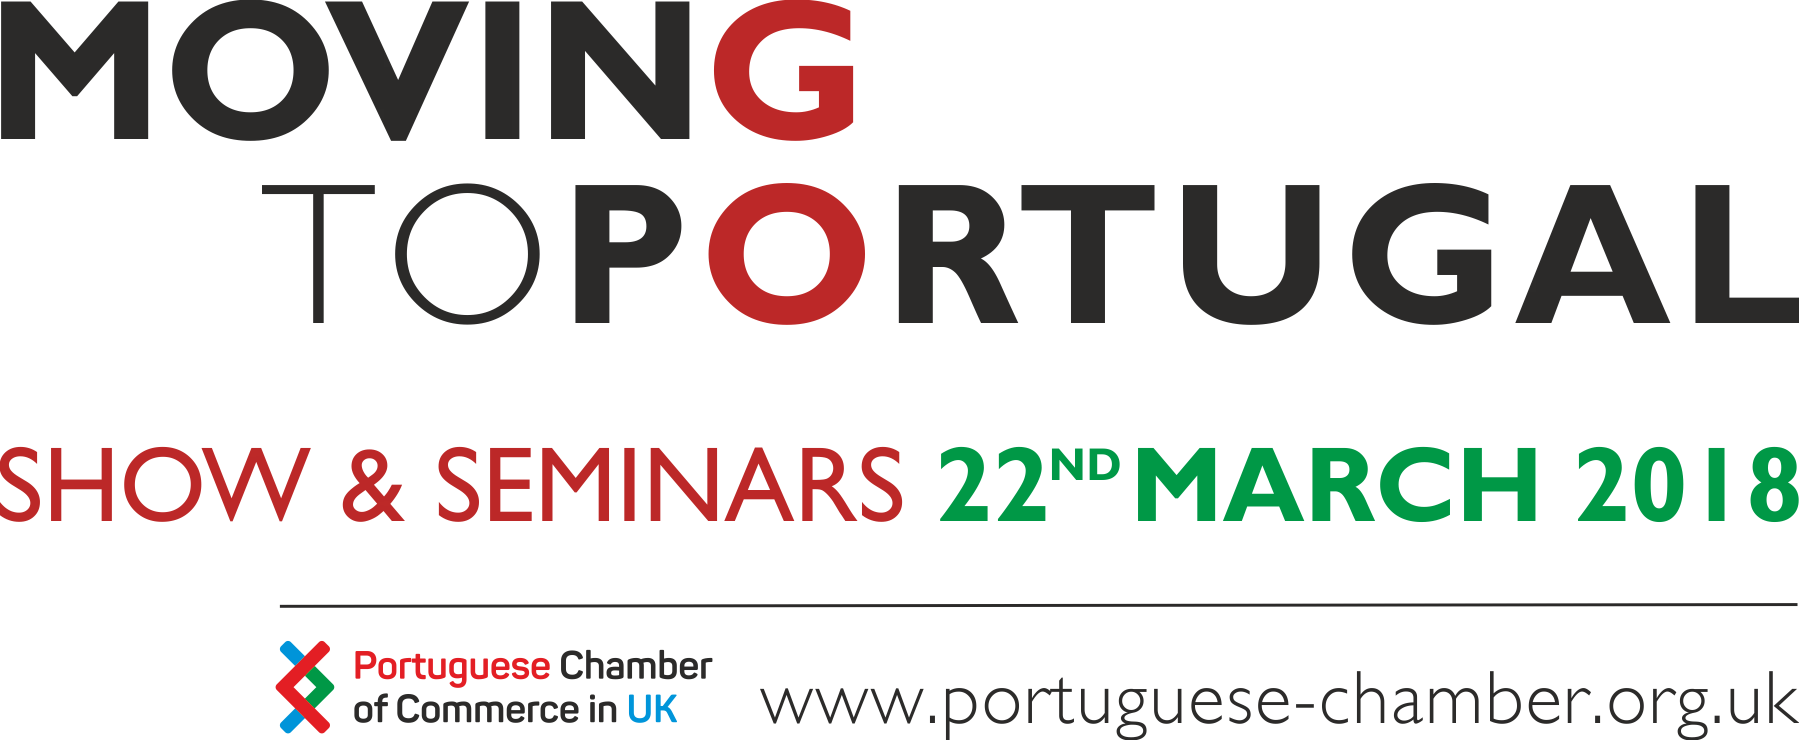 Moving to Portugal 22 March